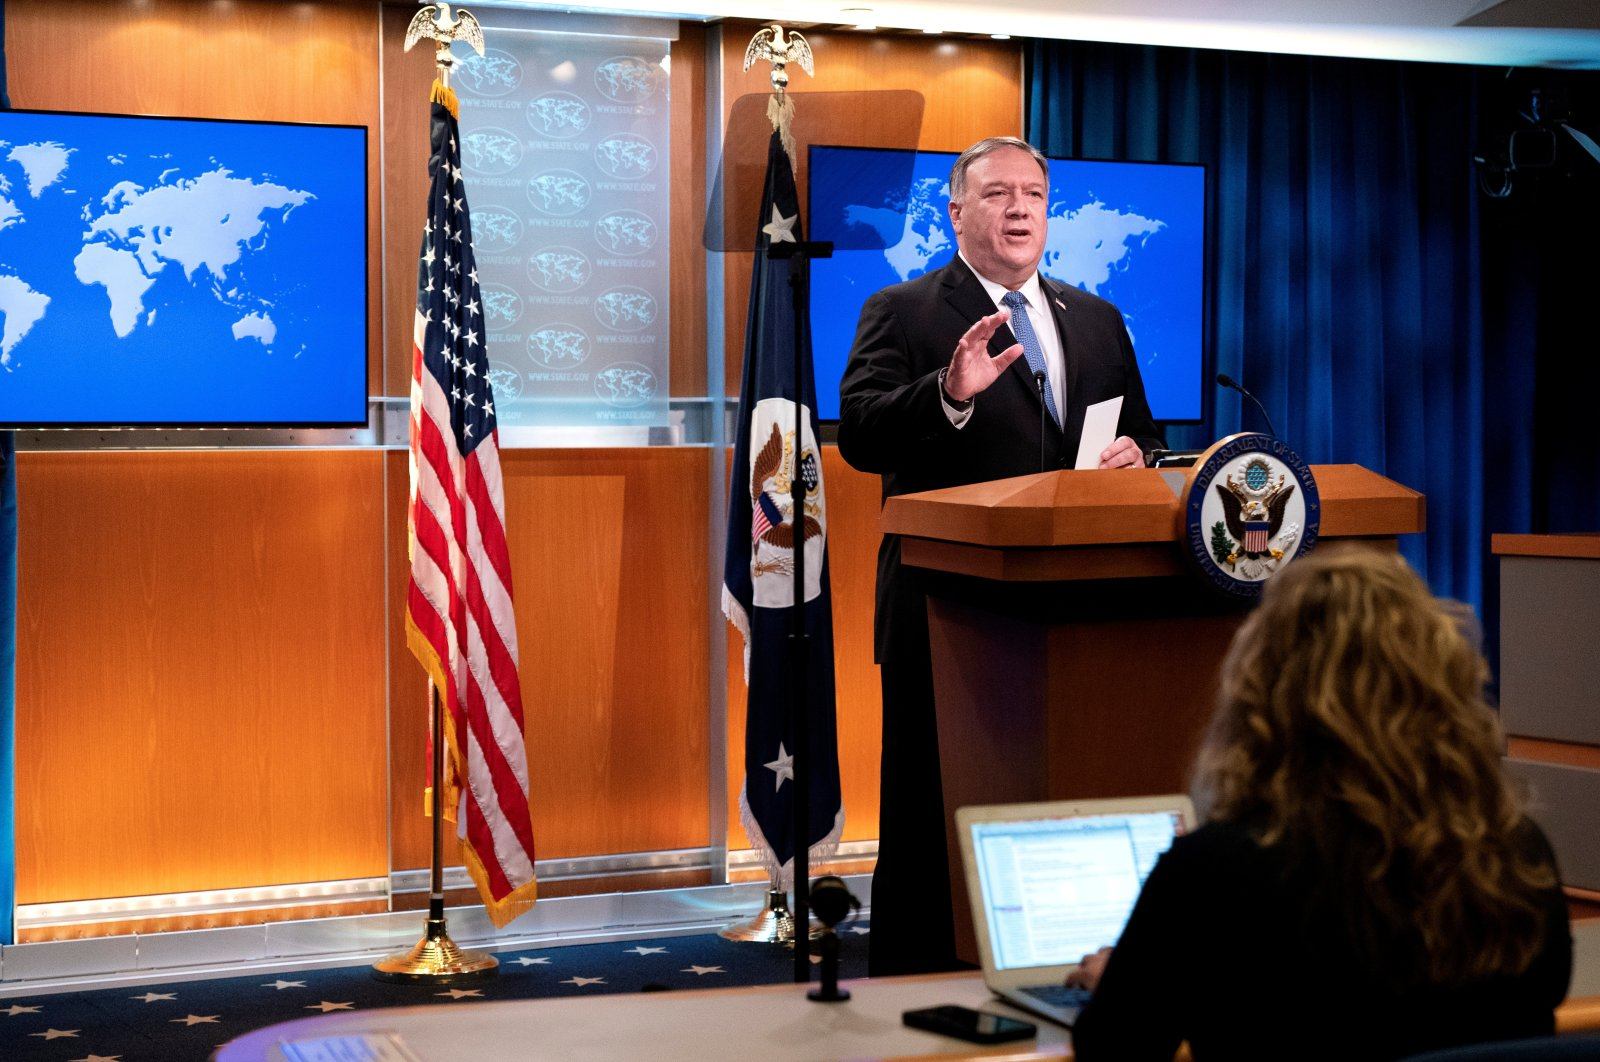 U.S. Secretary of State Mike Pompeo speaks during a media briefing at the State Department, Washington, U.S., Nov. 10, 2020. (REUTERS Photo)